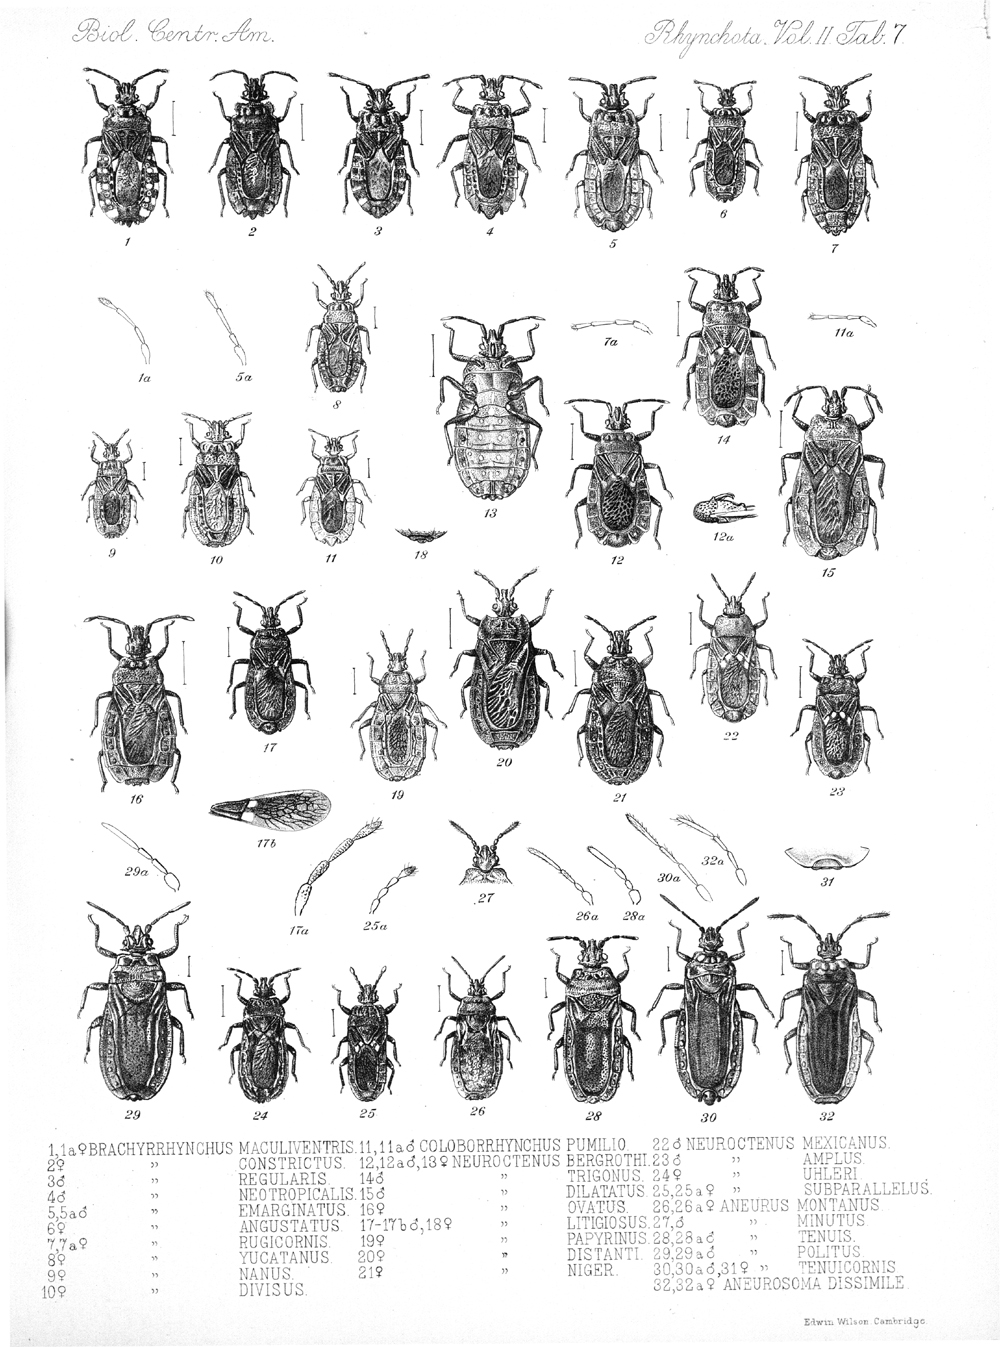 Other Insects,  Image number:bca_17_02_00_443